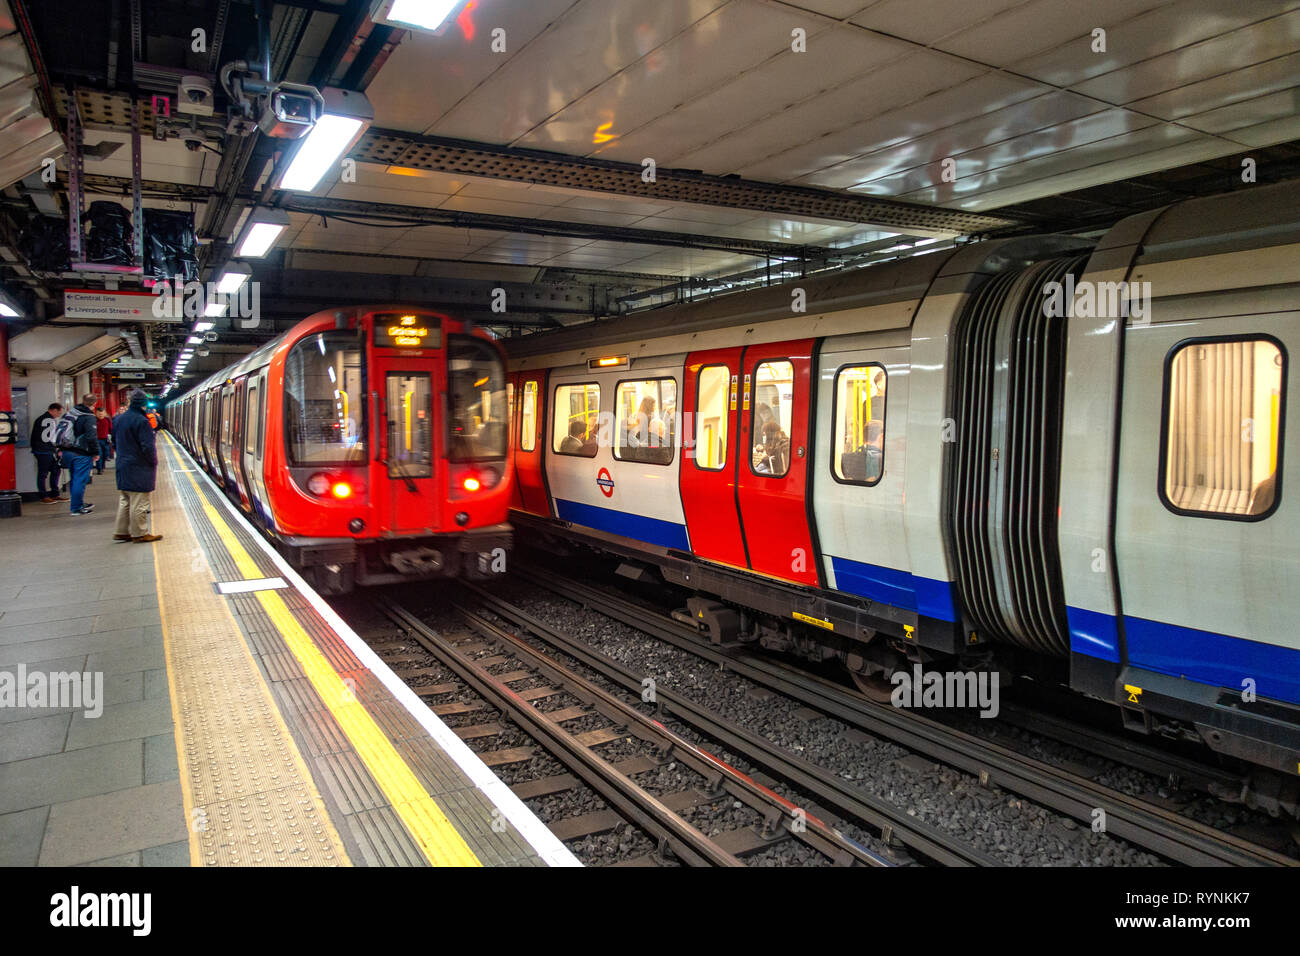 Two London Underground Tube Trains side by side at a platform in London, England - Stock Image